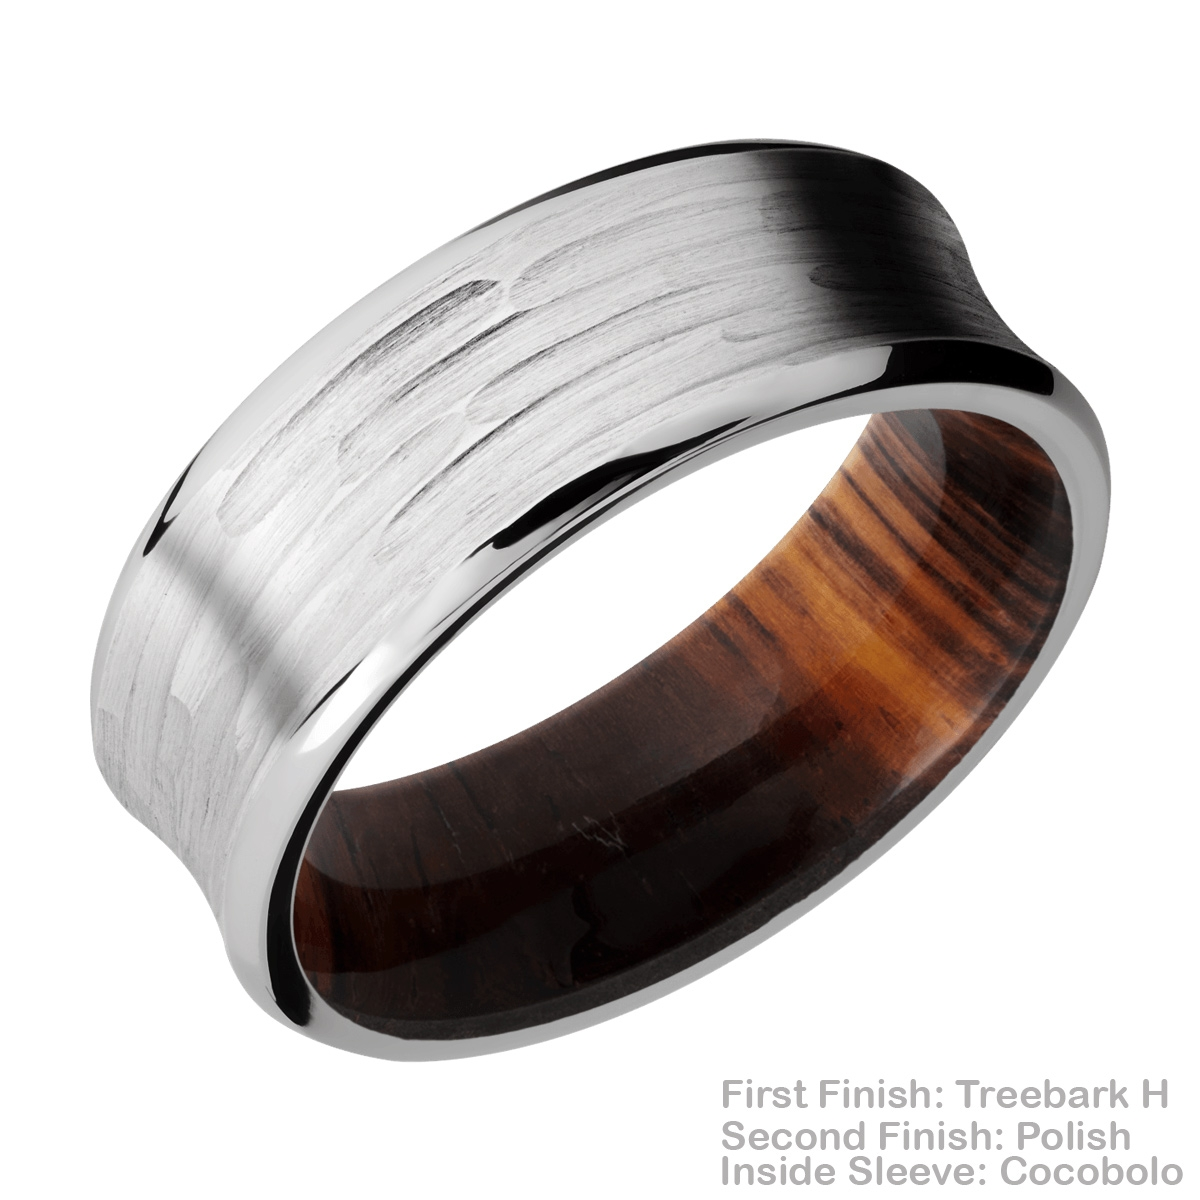 Lashbrook HWSLEEVECC8CB Cobalt Chrome and Hardwood Wedding Ring or Band Alternative View 11